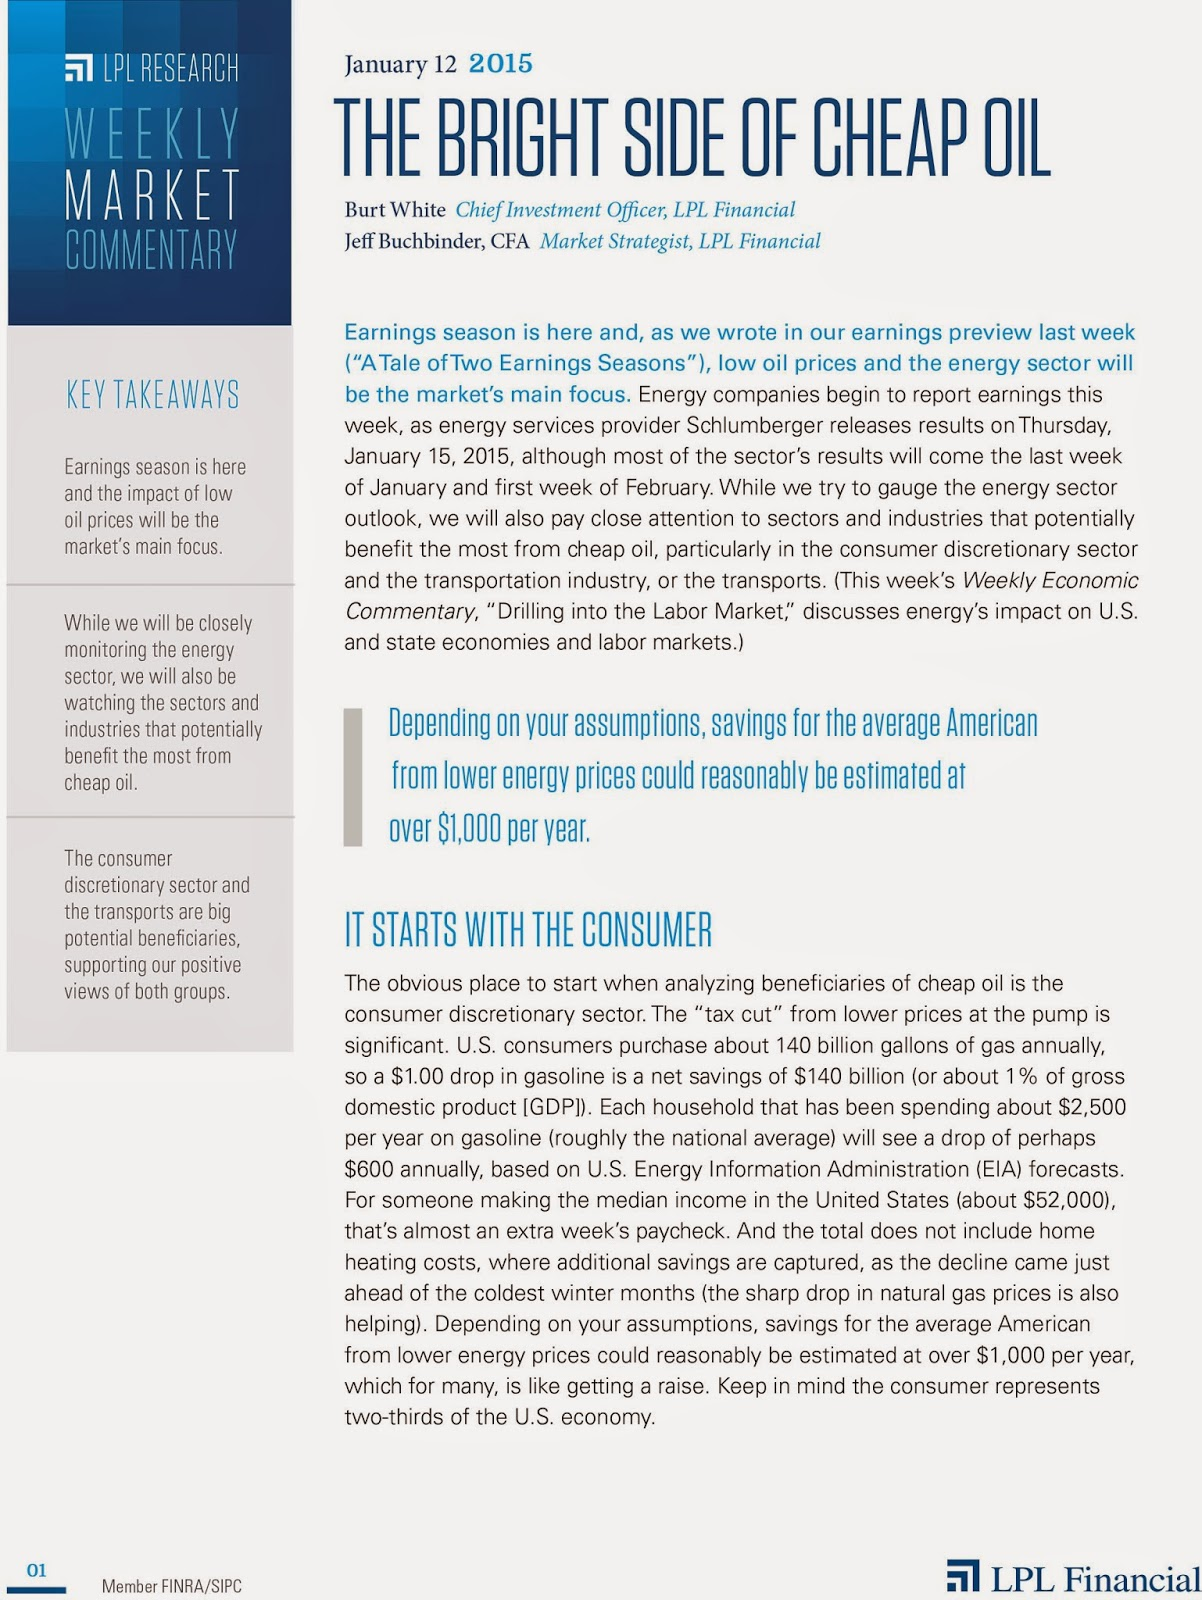 January 12, 2015- LPL Financial Weekly Market Commentary from Legacy Wealth Planning